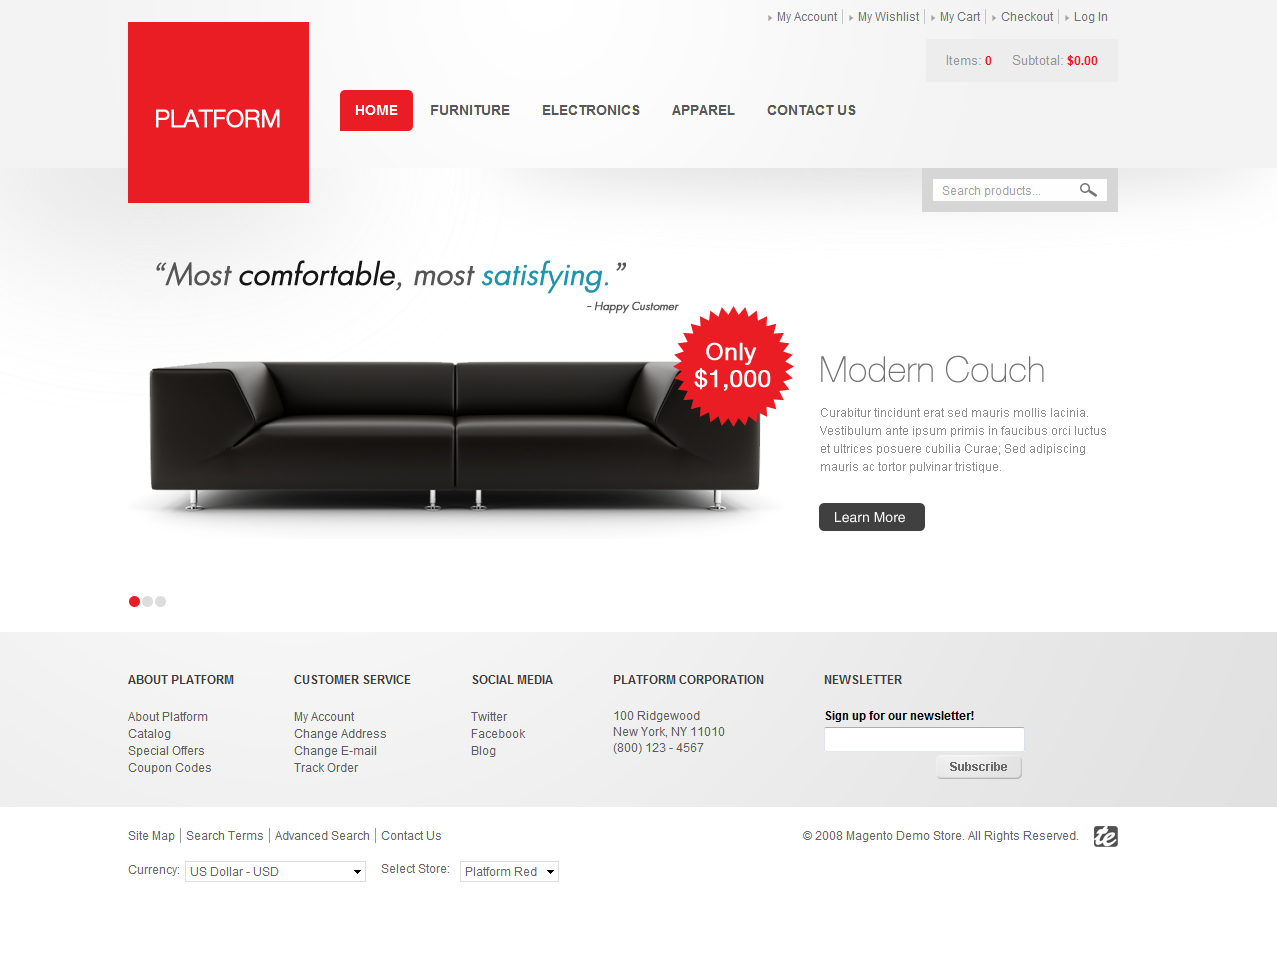 Free Download Platform Red Nulled Latest Version